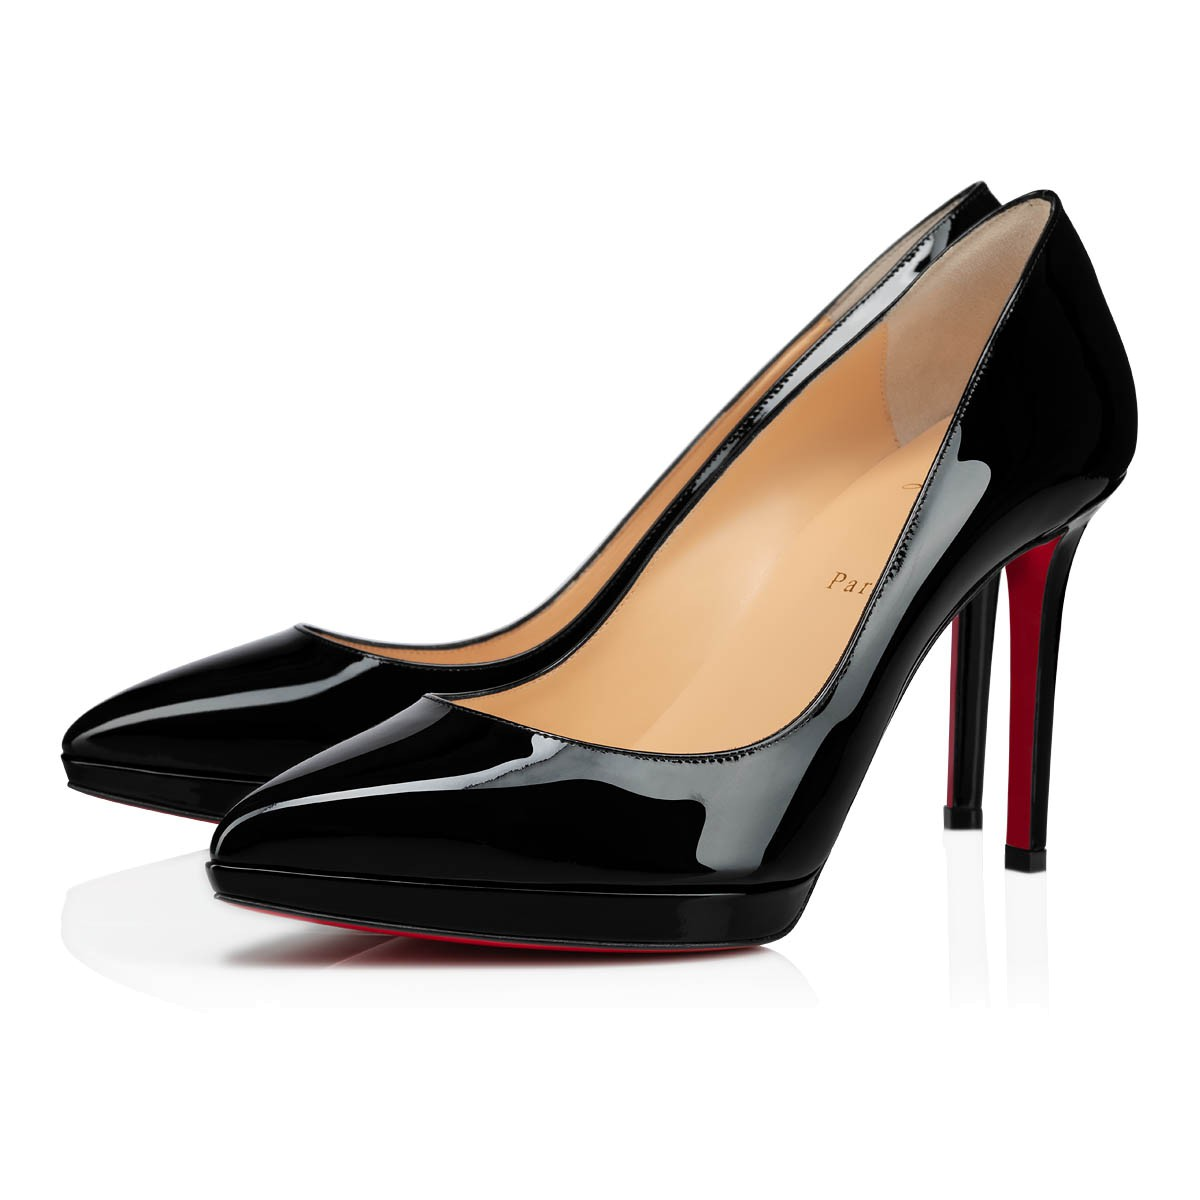 1ed9233fac2 Pigalle Plato 100 Black Patent Leather - Women Shoes - Christian Louboutin